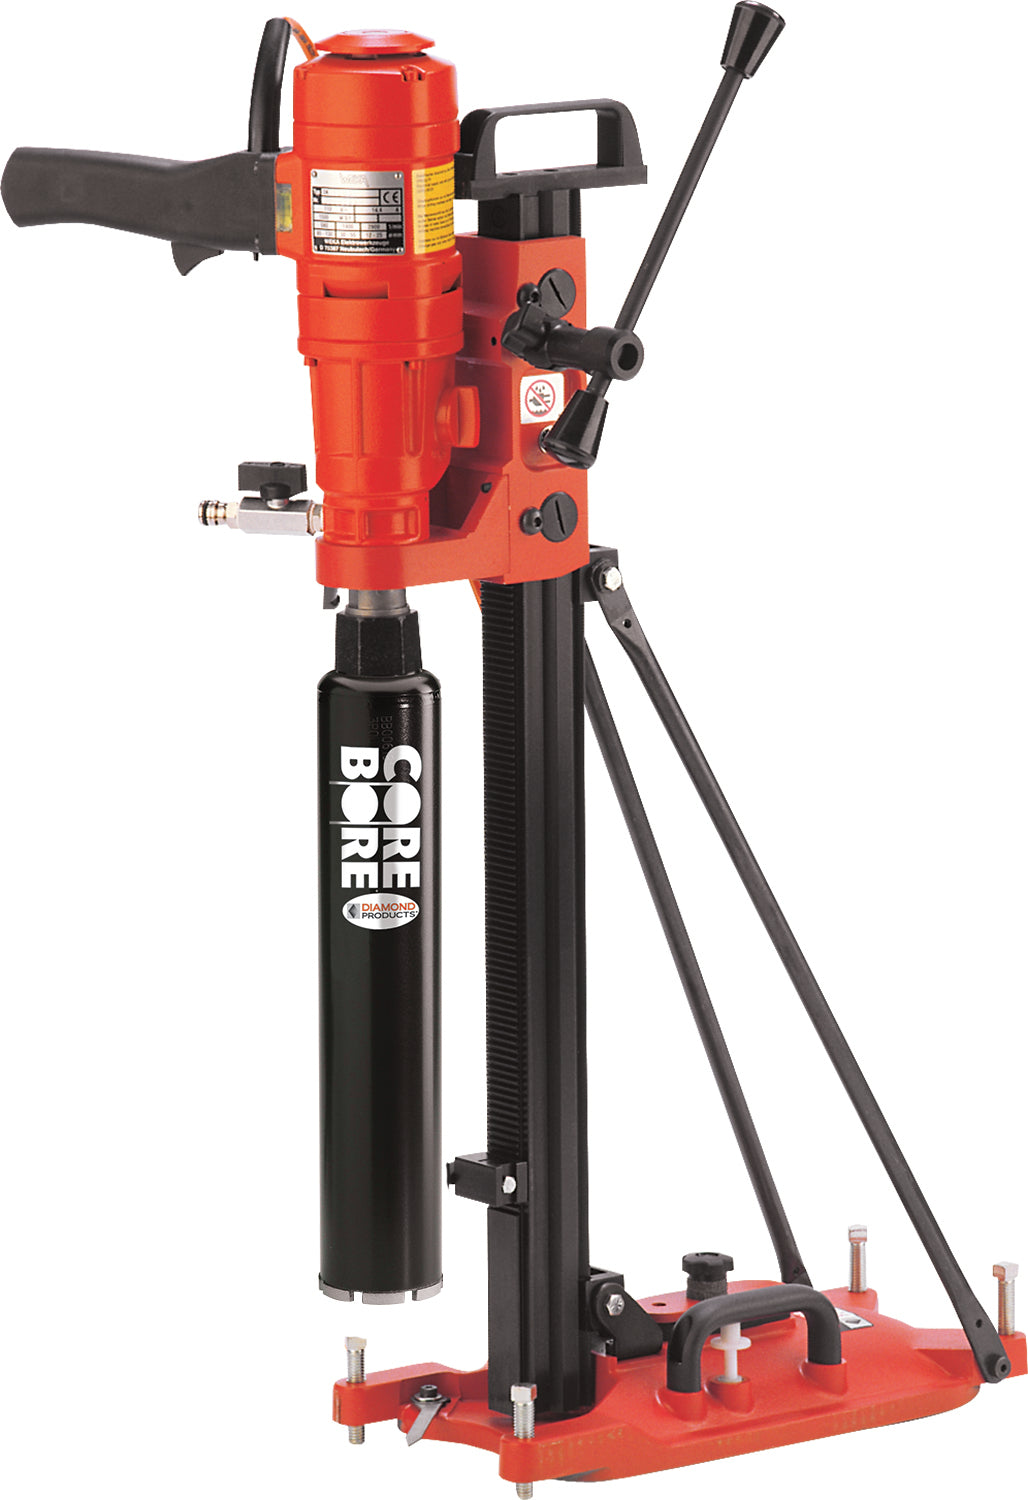 M-4 Combination Drill Rig Complete with DK12 Weka Core Drill Motor